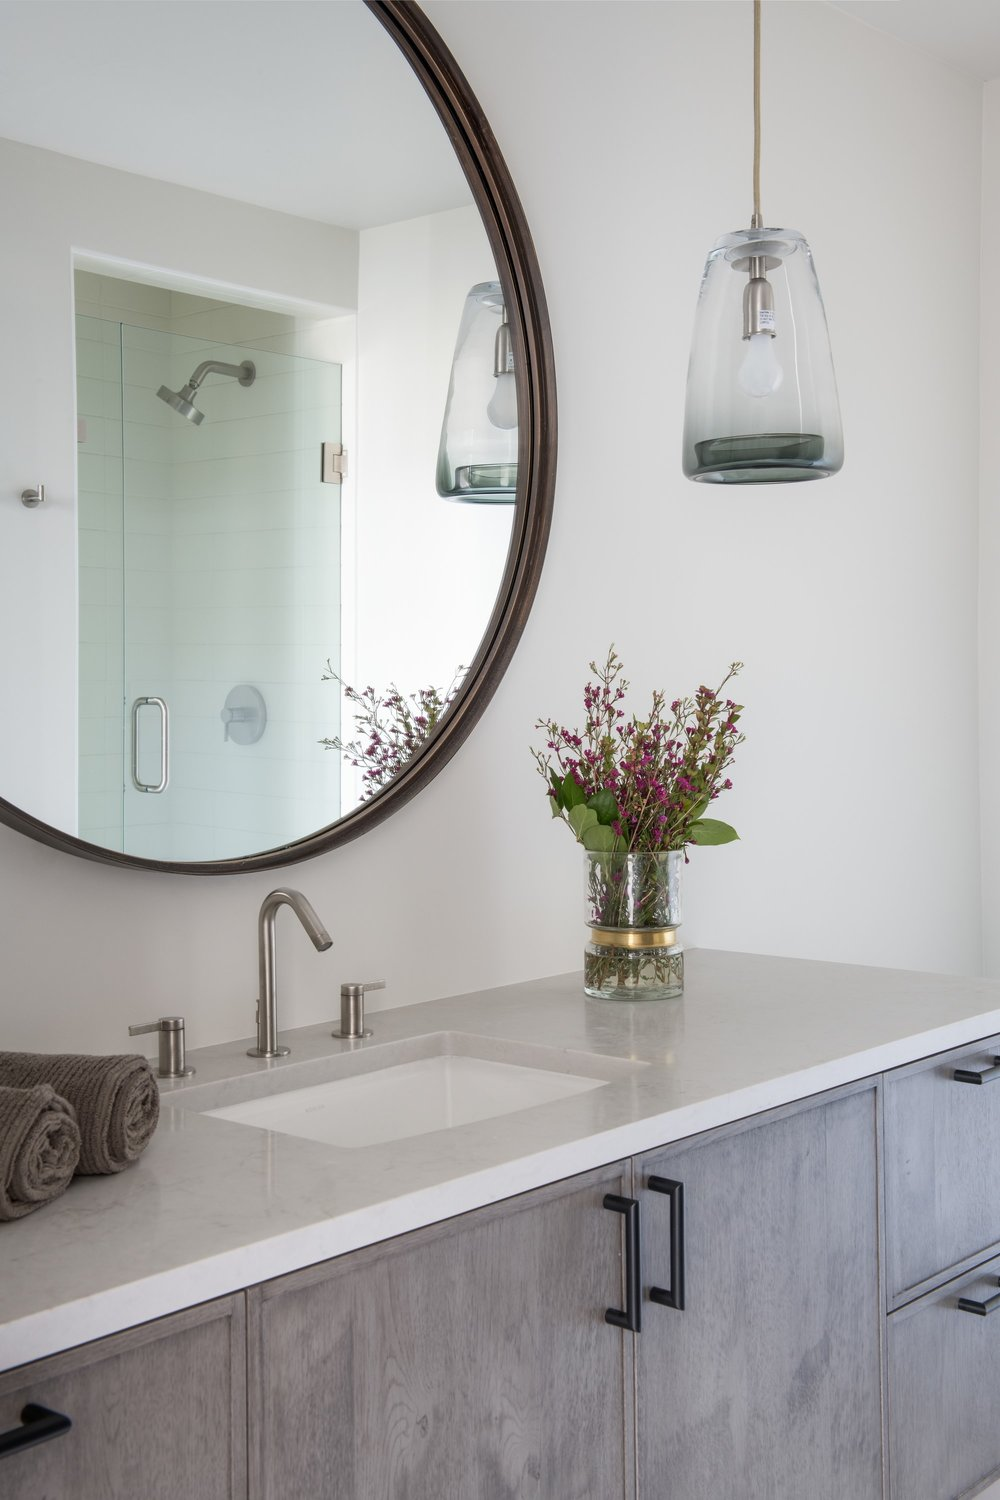 Elegant mirror above the cabinet and chandelier